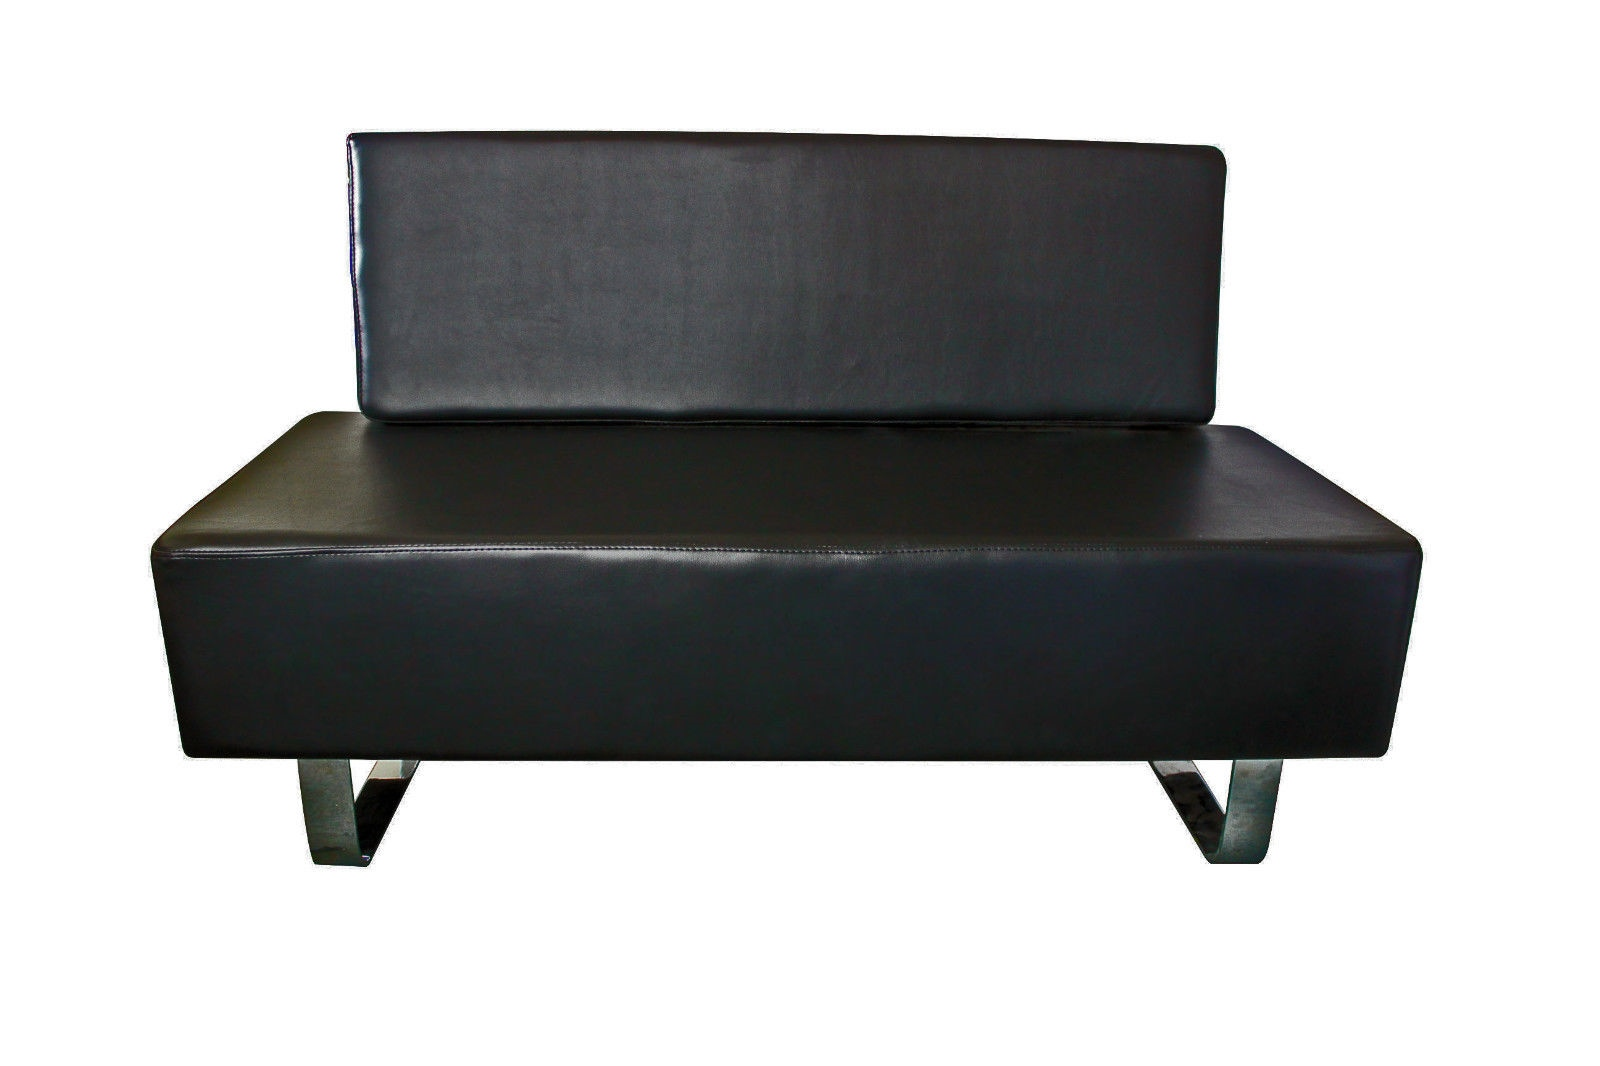 Salon Medical Beautytattoo Reception Black Waiting Chair Furniture Sofa Ebay